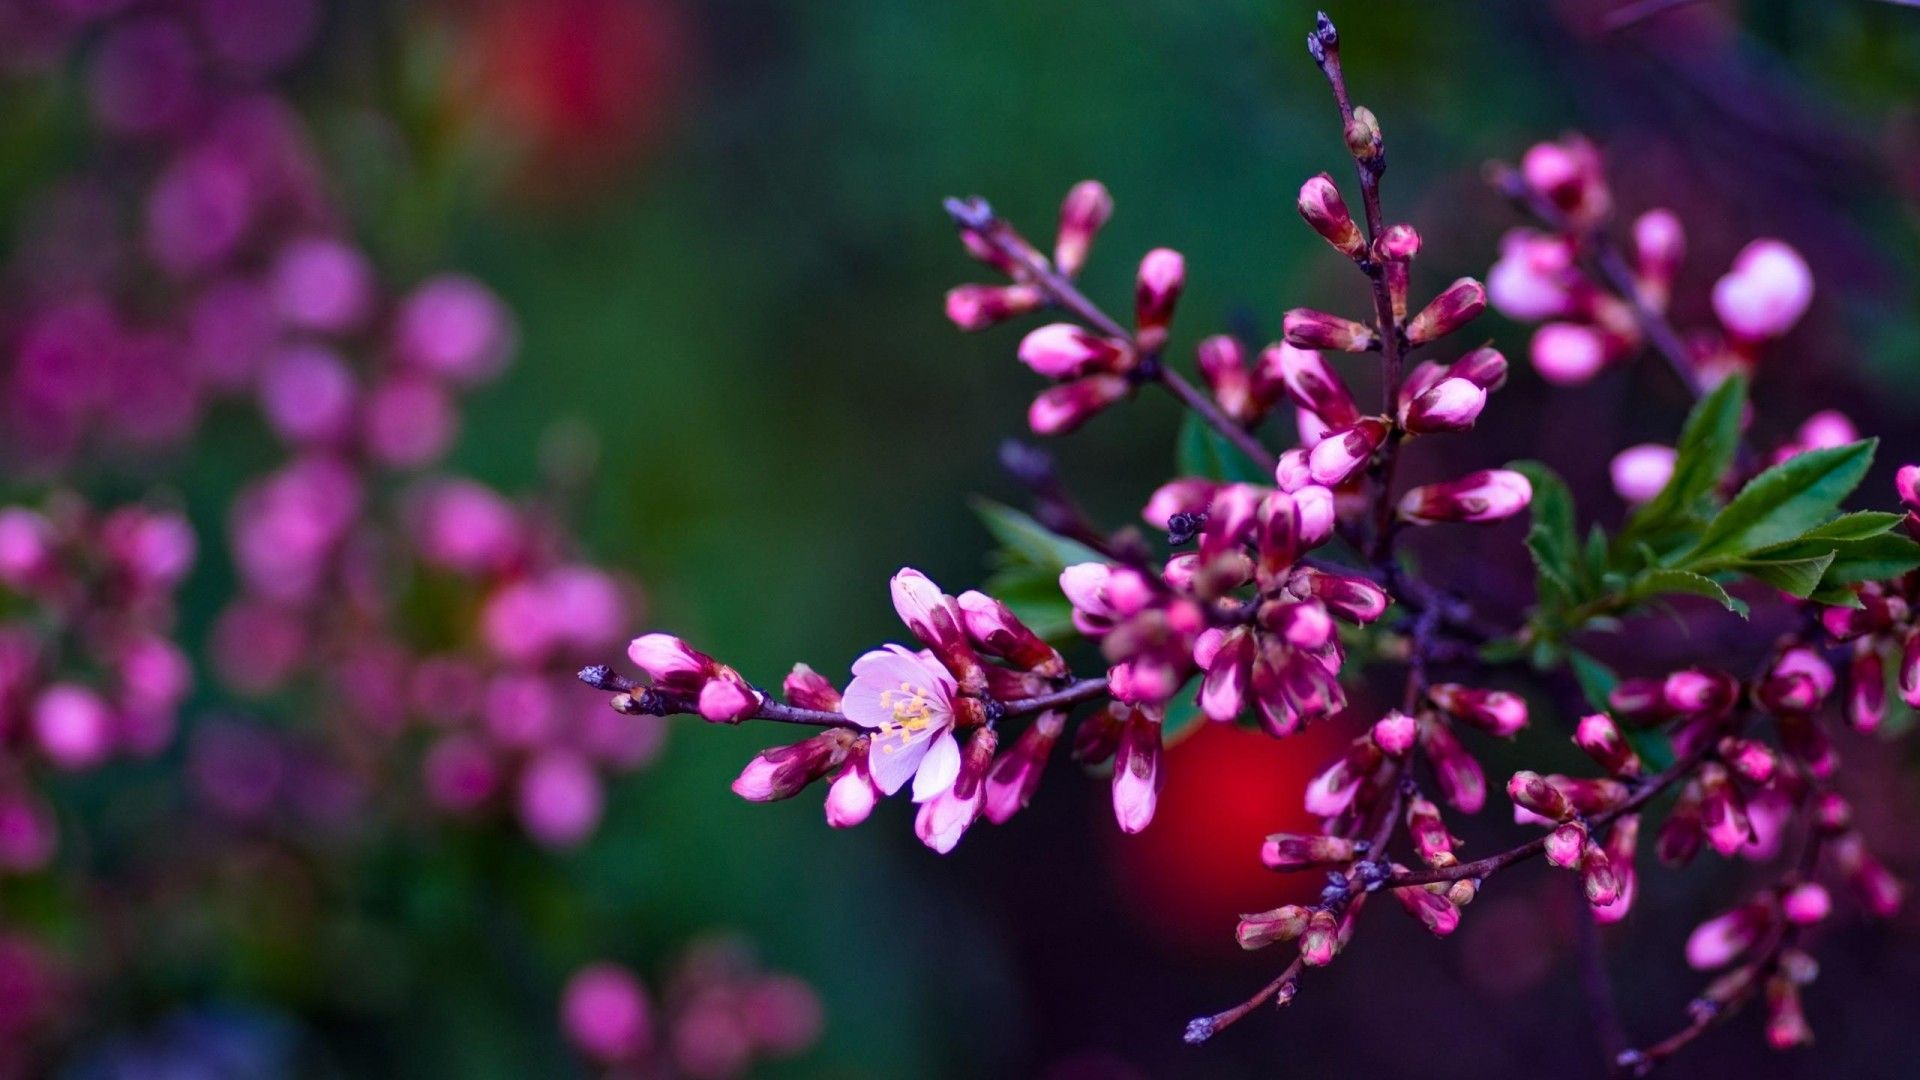 Wallpapers HD Flower Group 91+